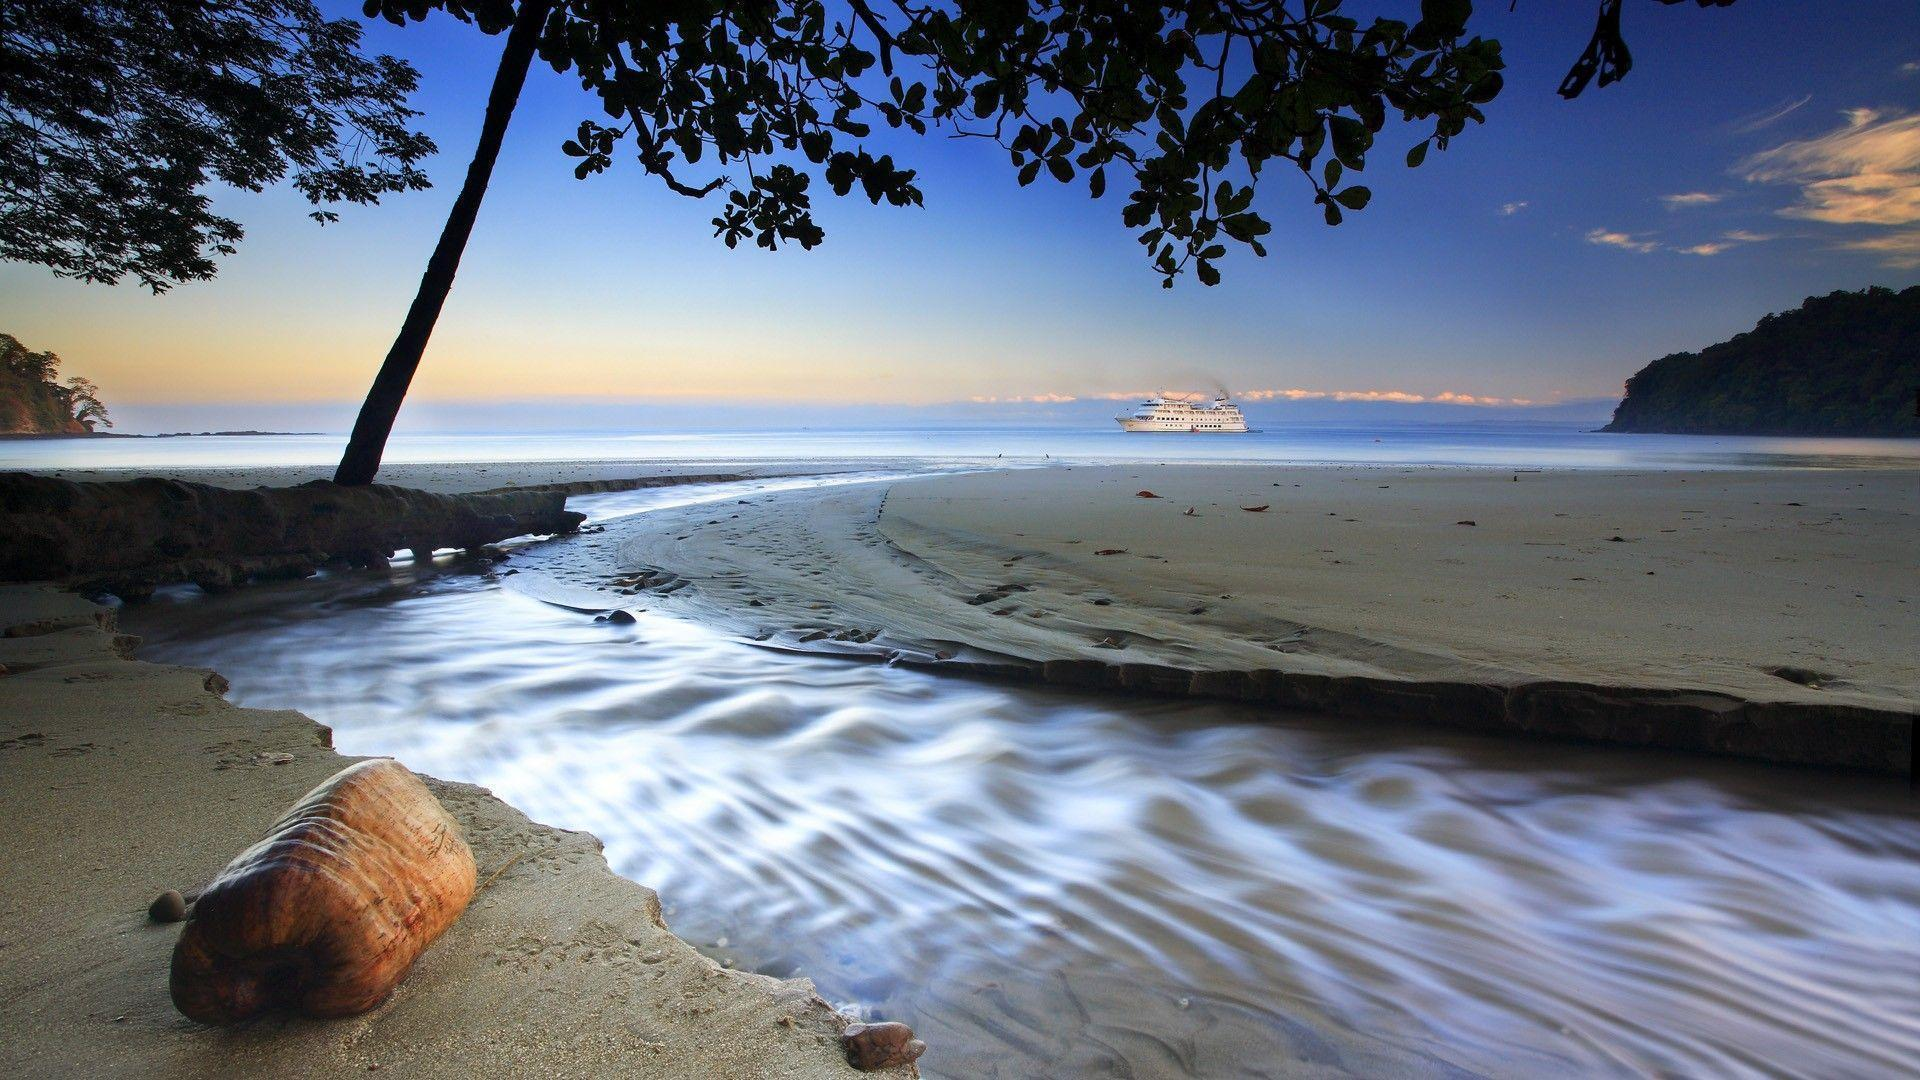 Populaire Costa Rica Wallpapers - Wallpaper Cave WT89